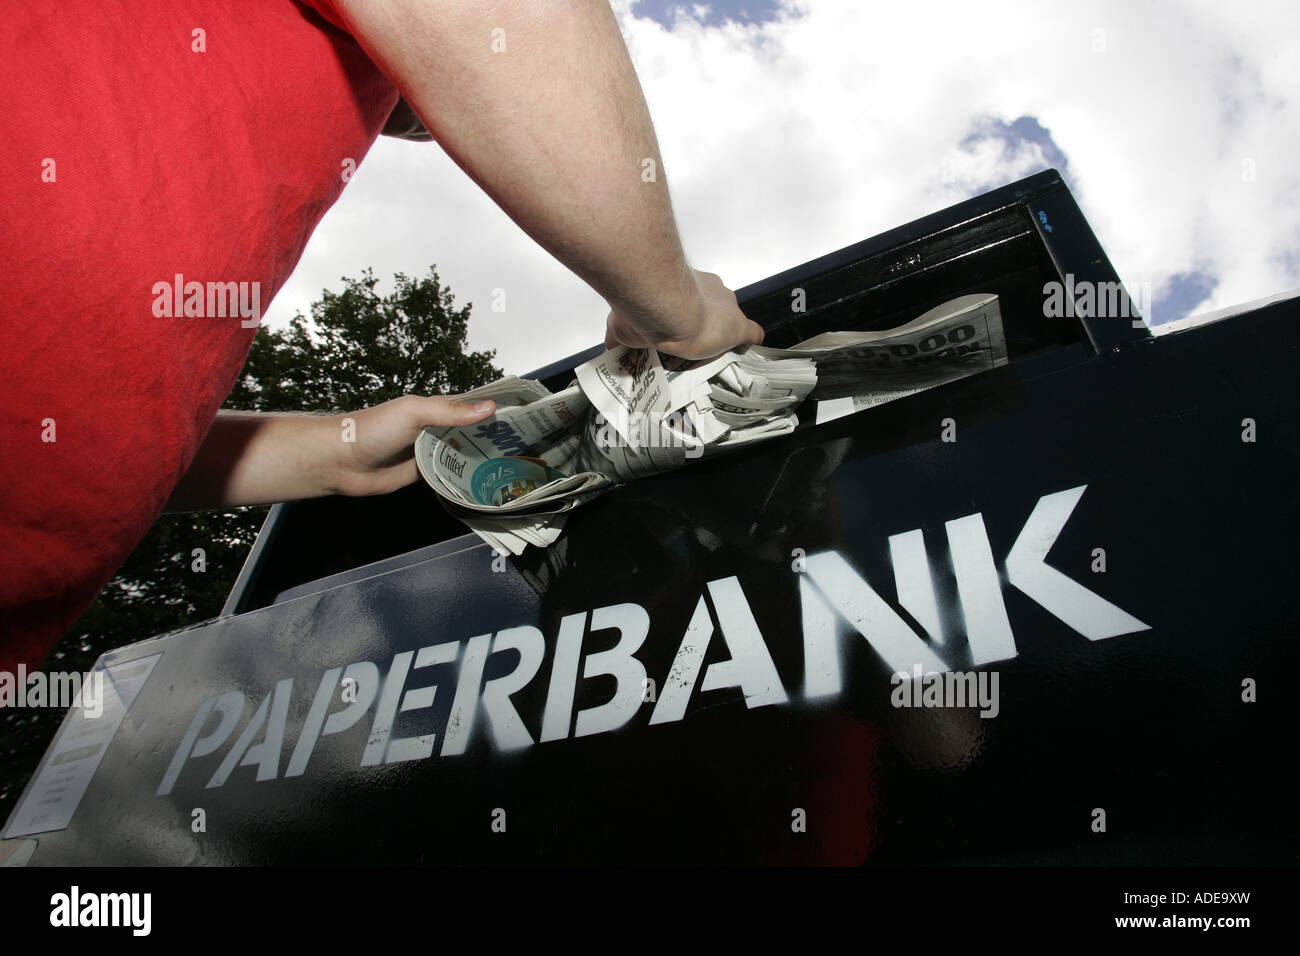 A YOUNG MAN RECYCLES NEWSPAPERS AND MAGAZINES AT A PAPERBANK. - Stock Image